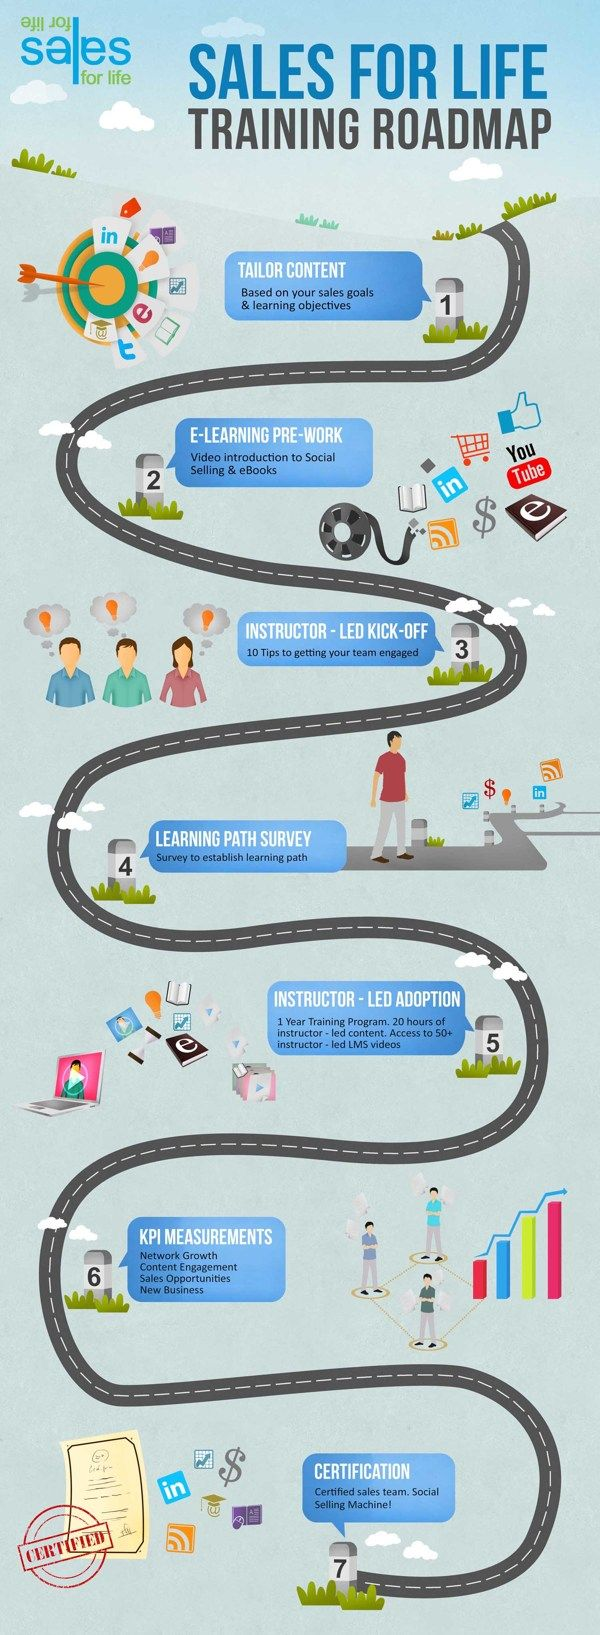 Sales Training Roadmap Infographic by MGL Media, via Behance